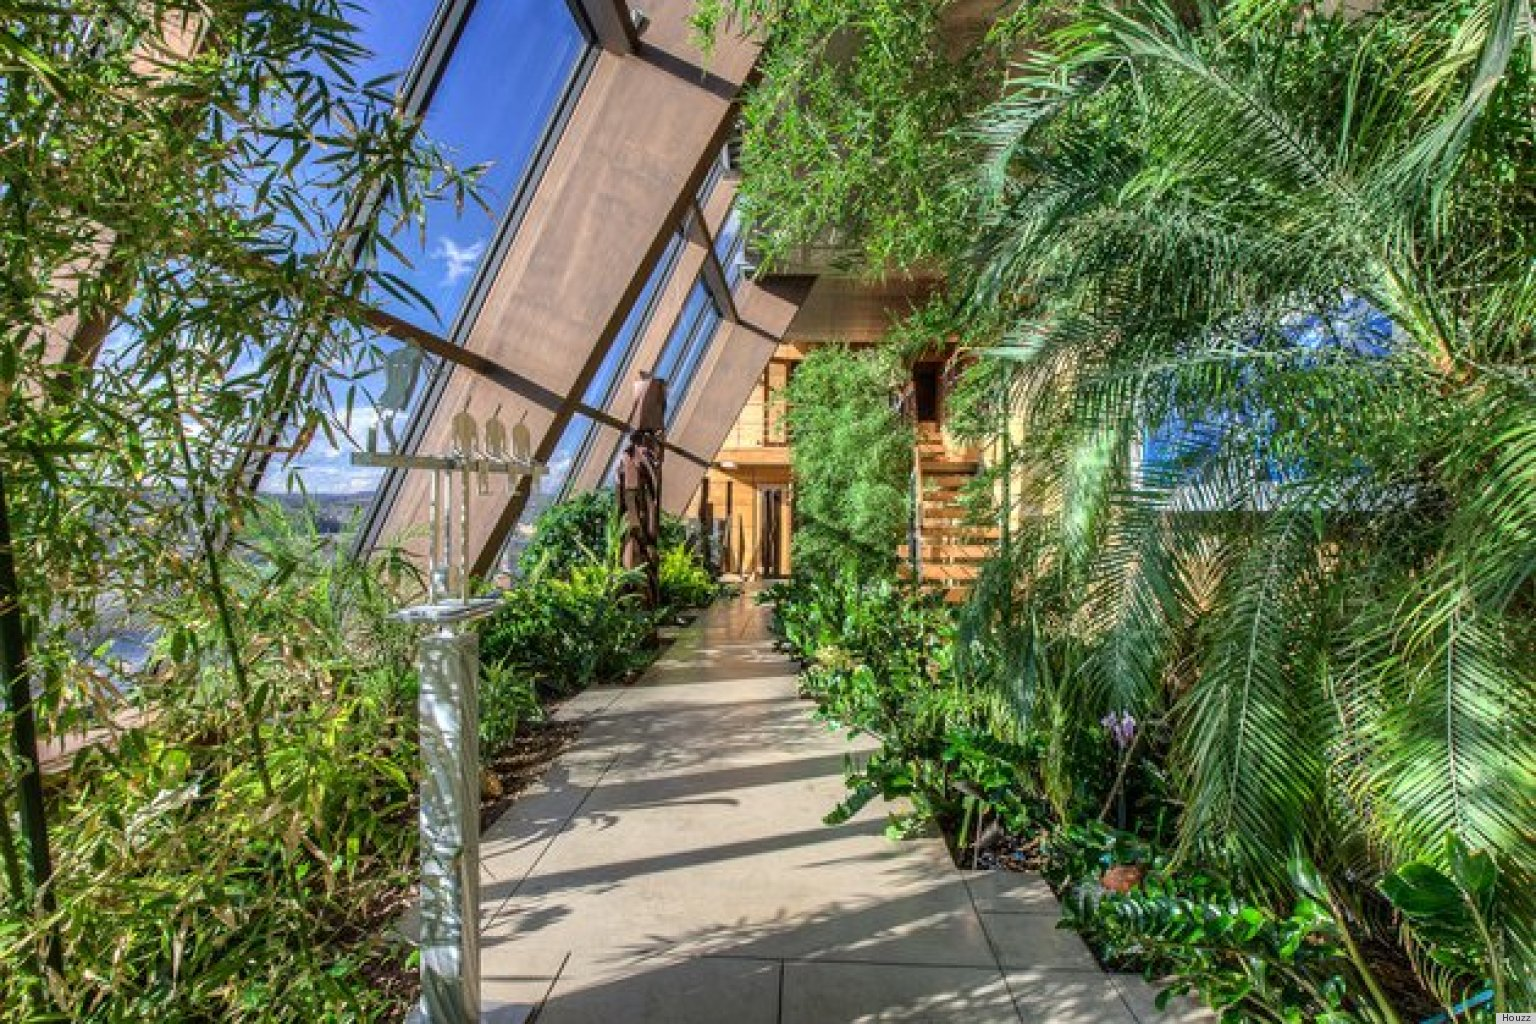 Good 10 Indoor Gardens That Definitely Bring The Outdoors In (PHOTOS) | HuffPost